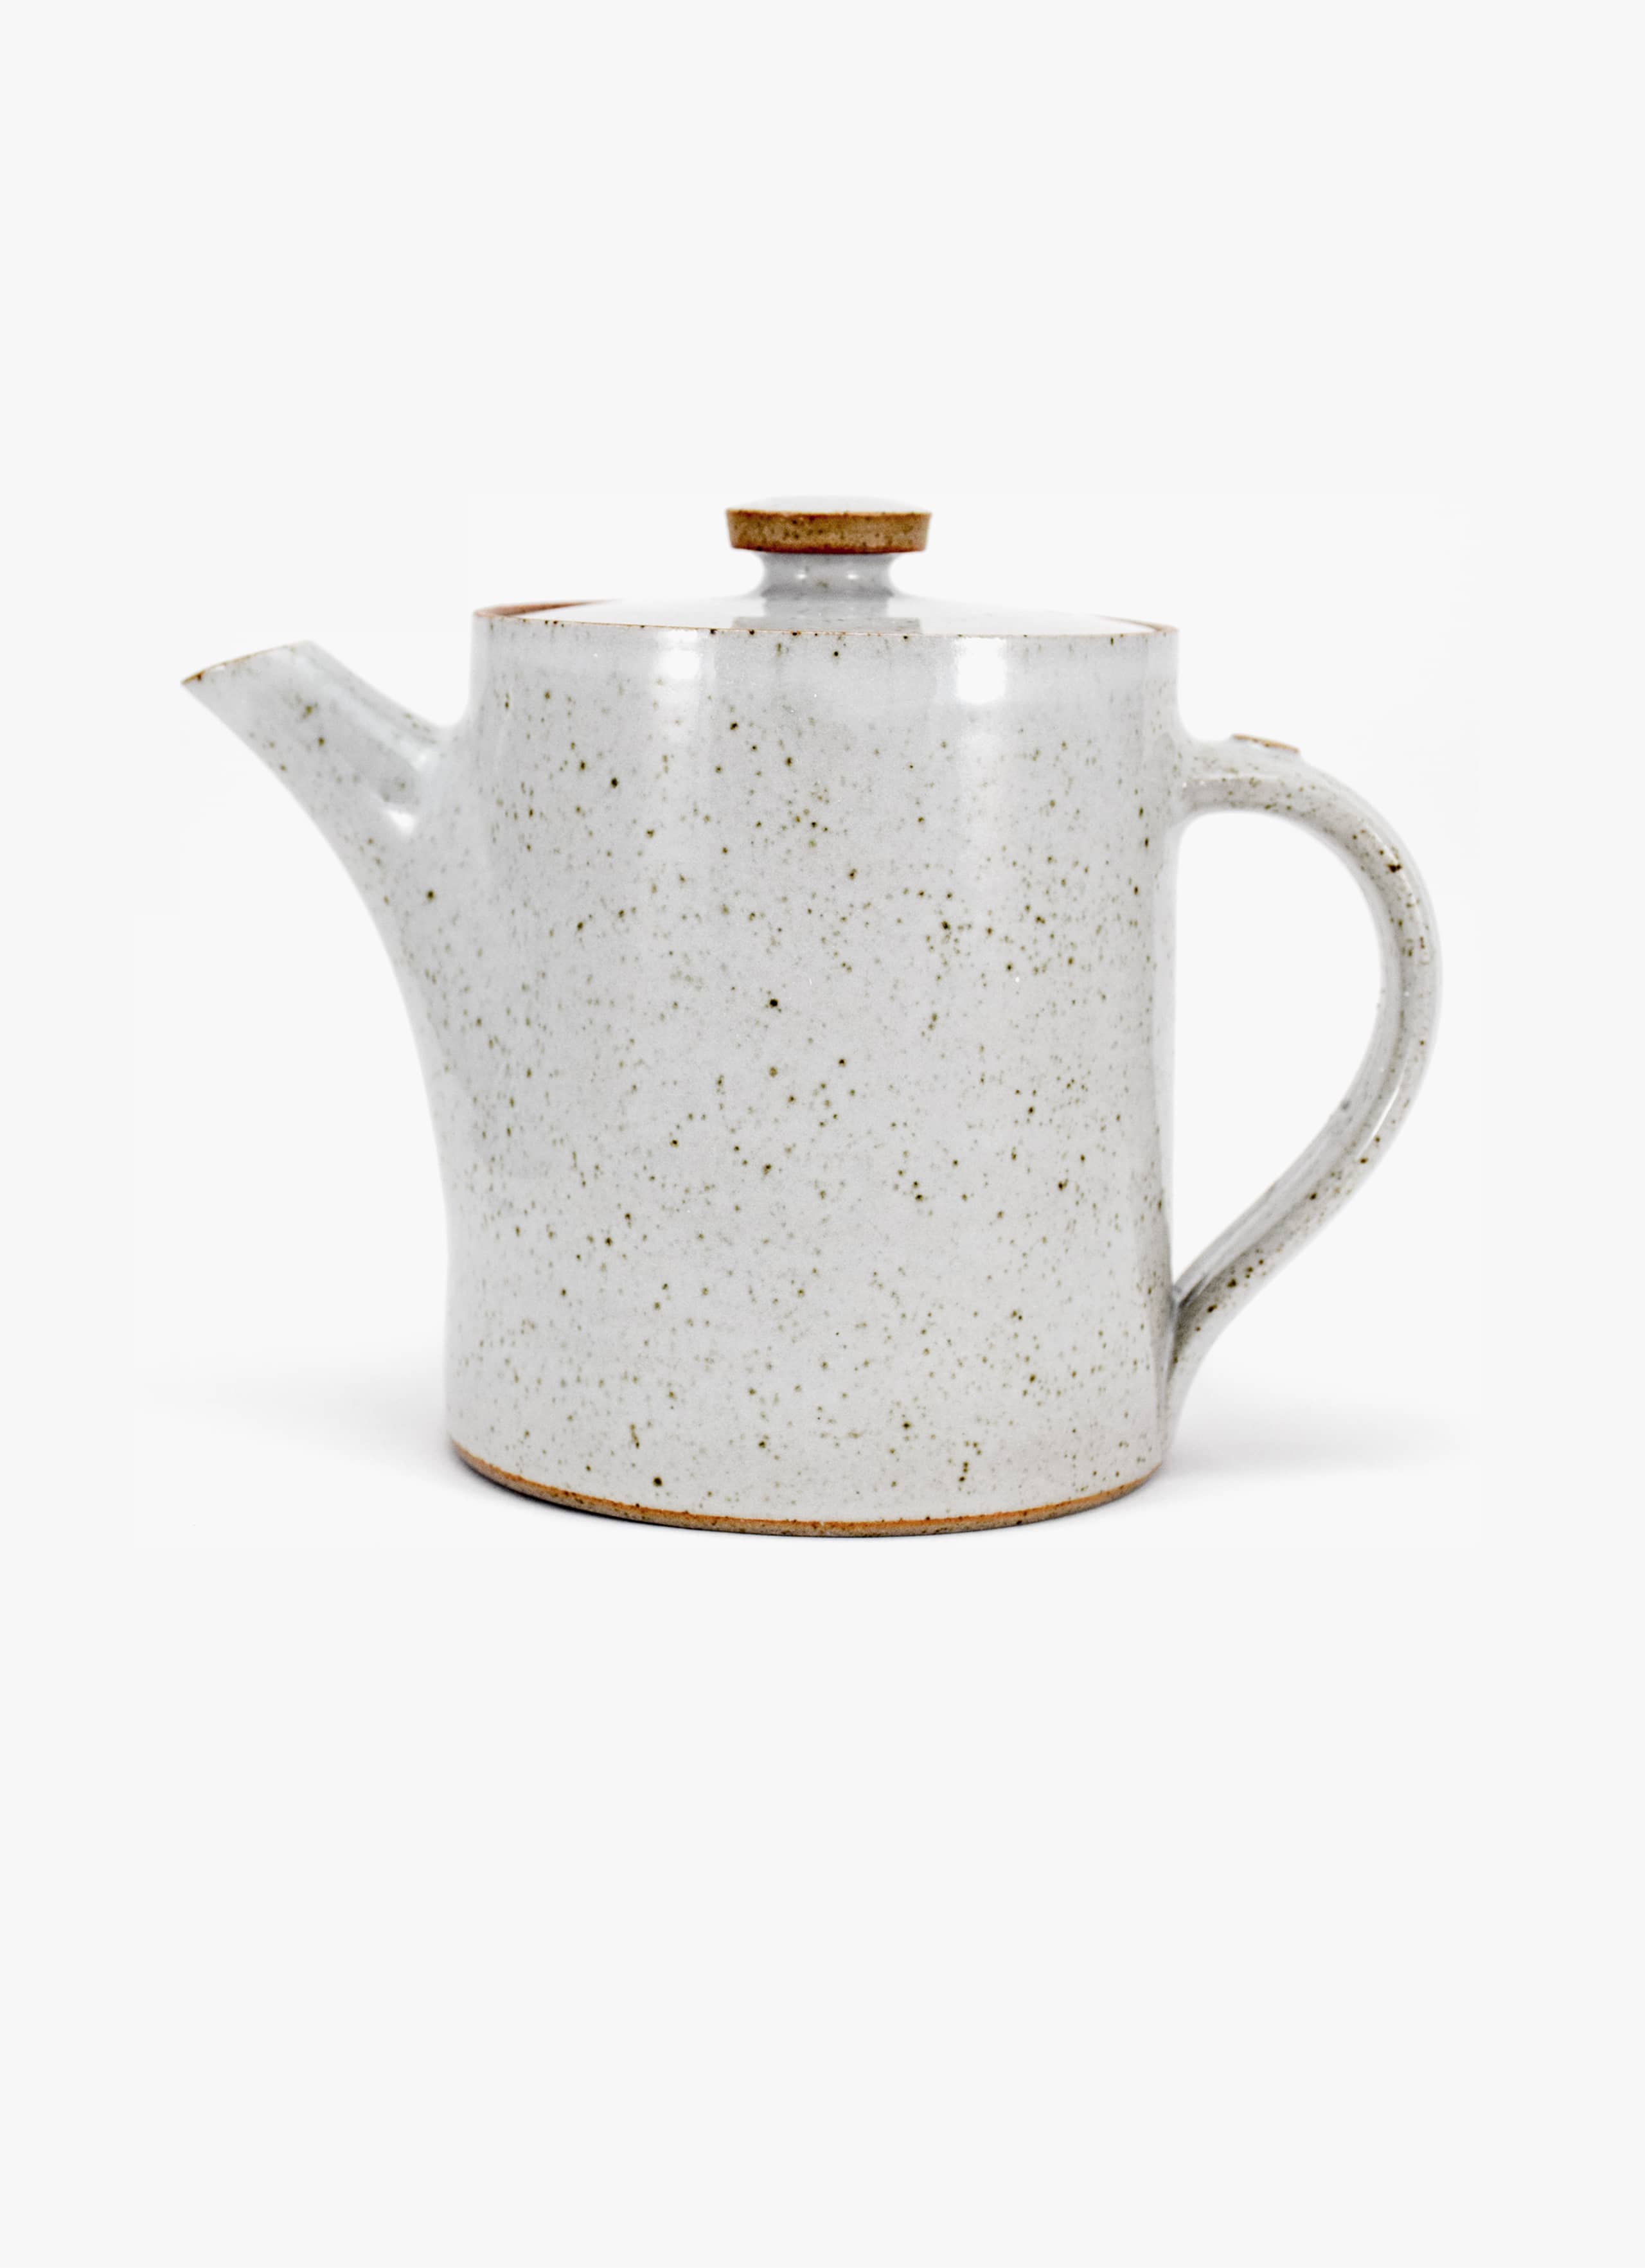 James and Tilla Waters - Thrown Stoneware - Teapot - White glaze